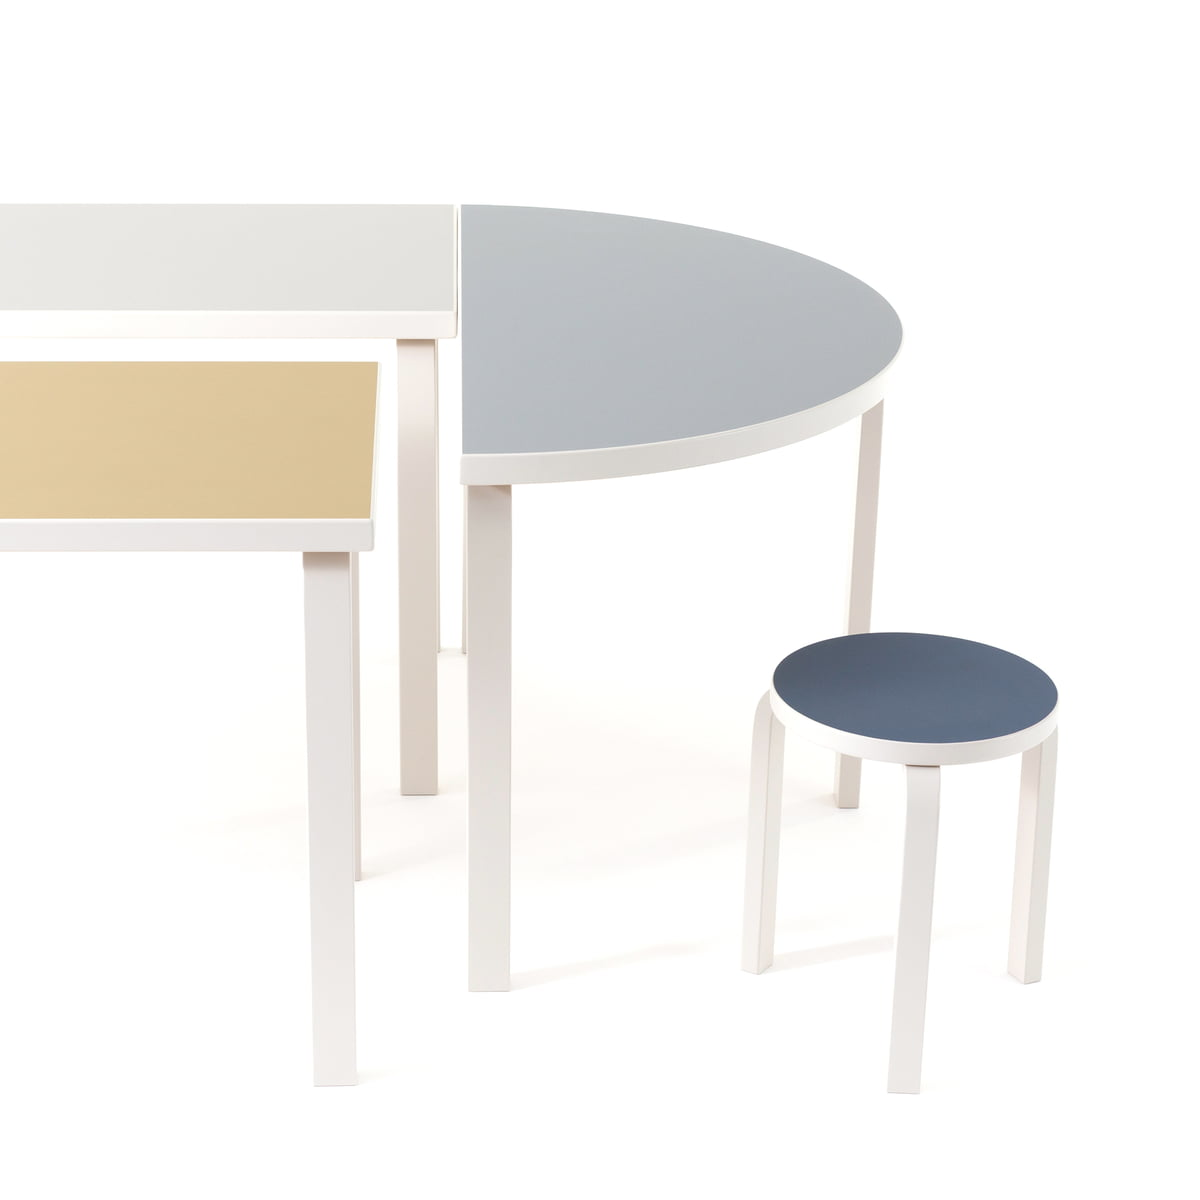 stool  (finland ) by artek  connox - alvar aalto furniture in the finland  special edition